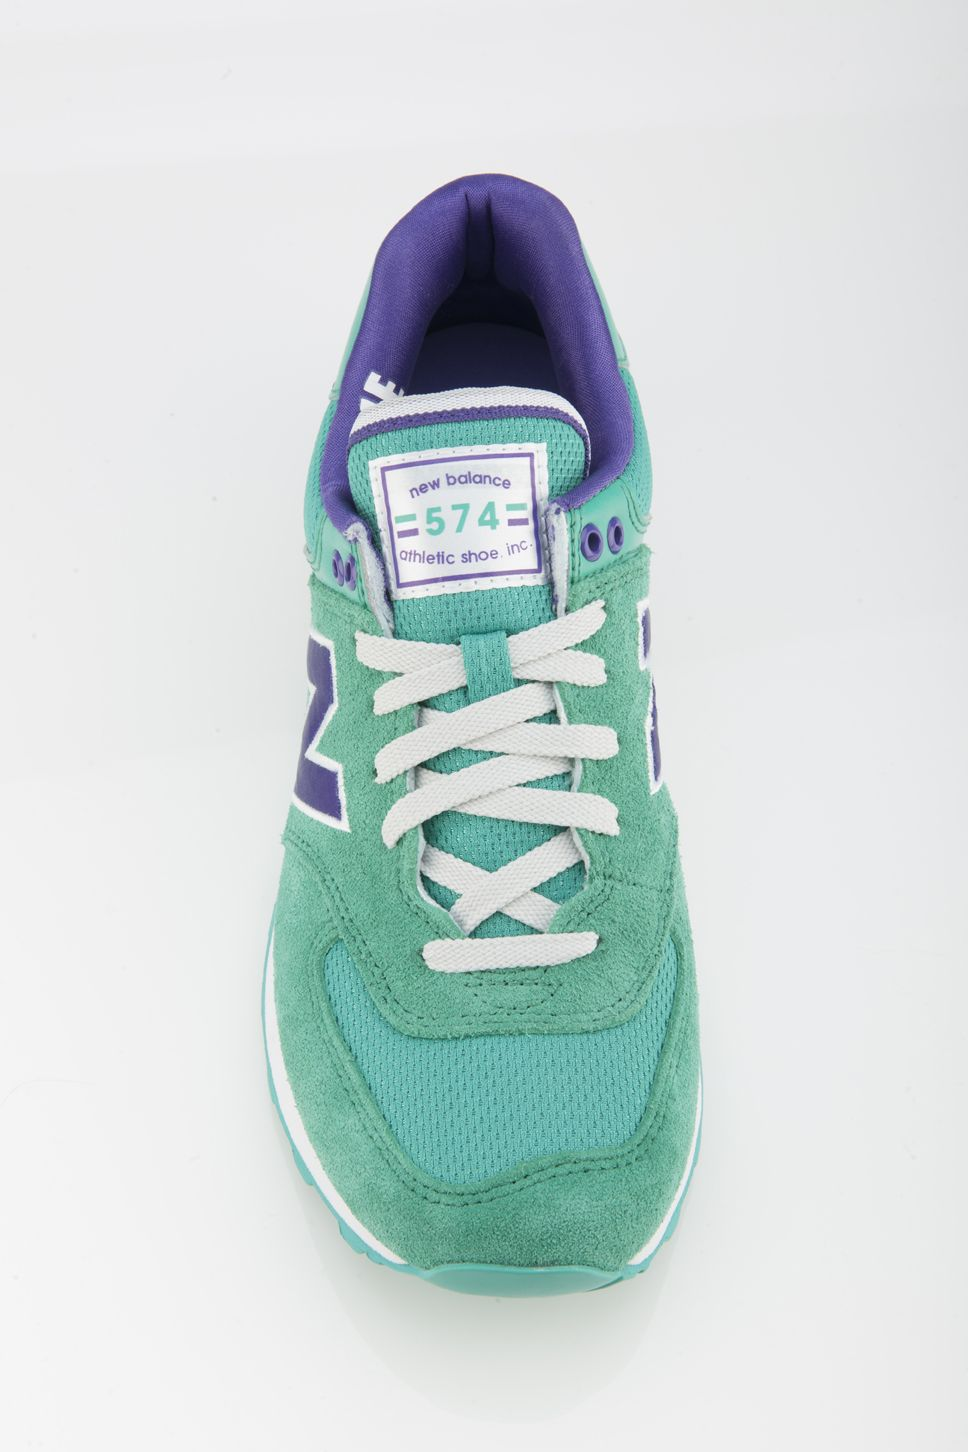 Summer Run With New Balance New Balance Shoes Athletic Shoes